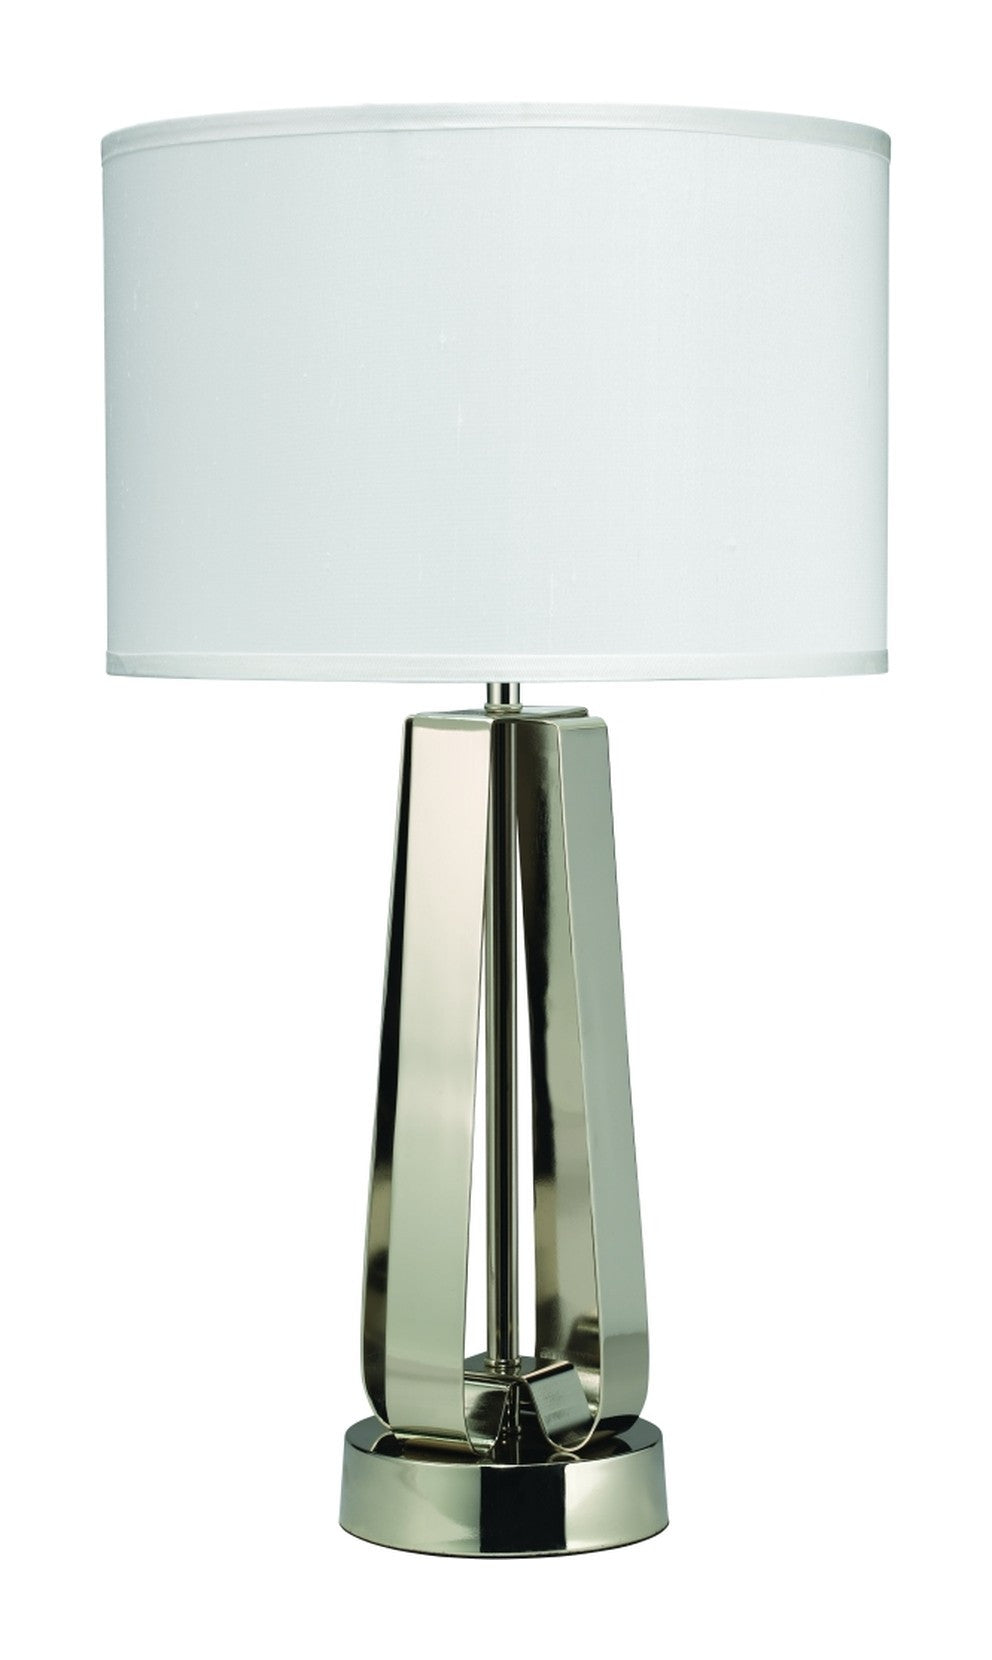 Strap table lamp jamie young luxe home philadelphia strap table lamp jamie young geotapseo Gallery